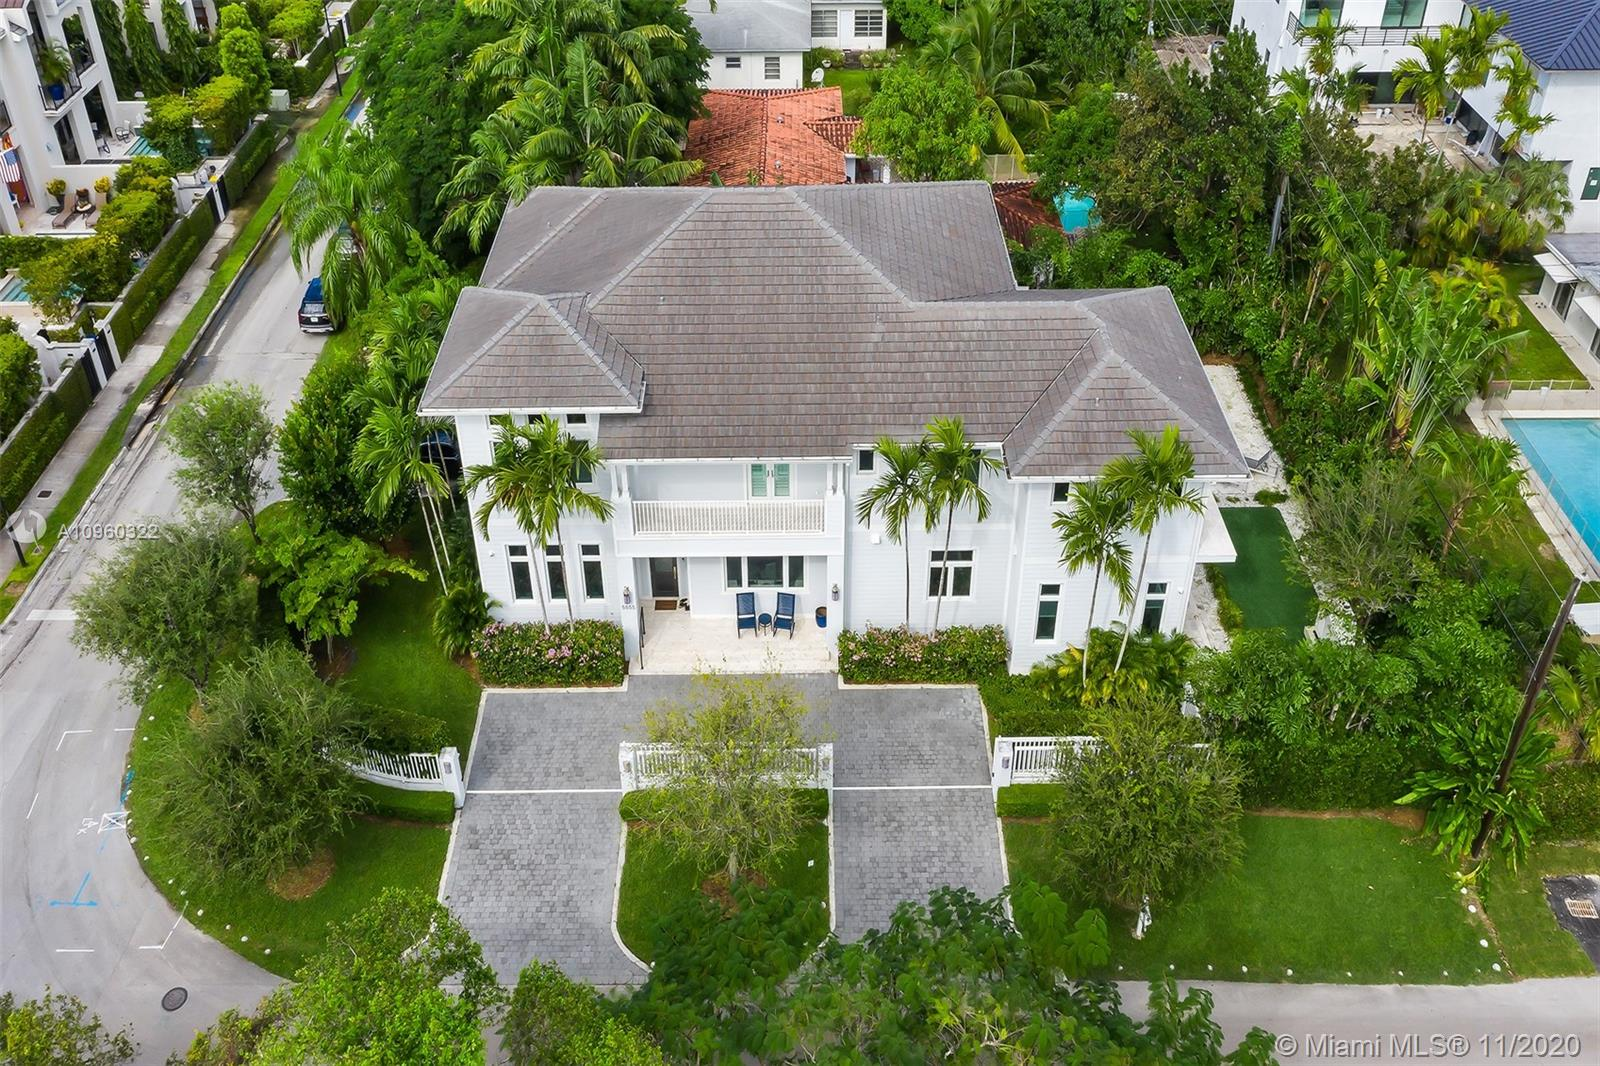 DREAM HOME ALERT! This picture perfect gated home on a corner lot has 6 bedrooms and 6 and 1/2 bathrooms and is the ultimate family residence filled with all the luxury amenities you could ever dream of. Start living the luxurious lifestyle cooking and entertaining for your family and friends in the professional chef's eat-in kitchen with SubZero and Wolfe appliances, two large cooking islands and walk-in pantry. The dining room has a custom bar with 2 wine fridges, ice machine and plenty of storage. High ceilings and art wall throughout the spacious living areas. Step outside through French doors to a covered patio complete with summer kitchen overlooking the pool. Full House Generator, Elevator, Security Cameras and much more. This picturesque house is truly one of a kind!